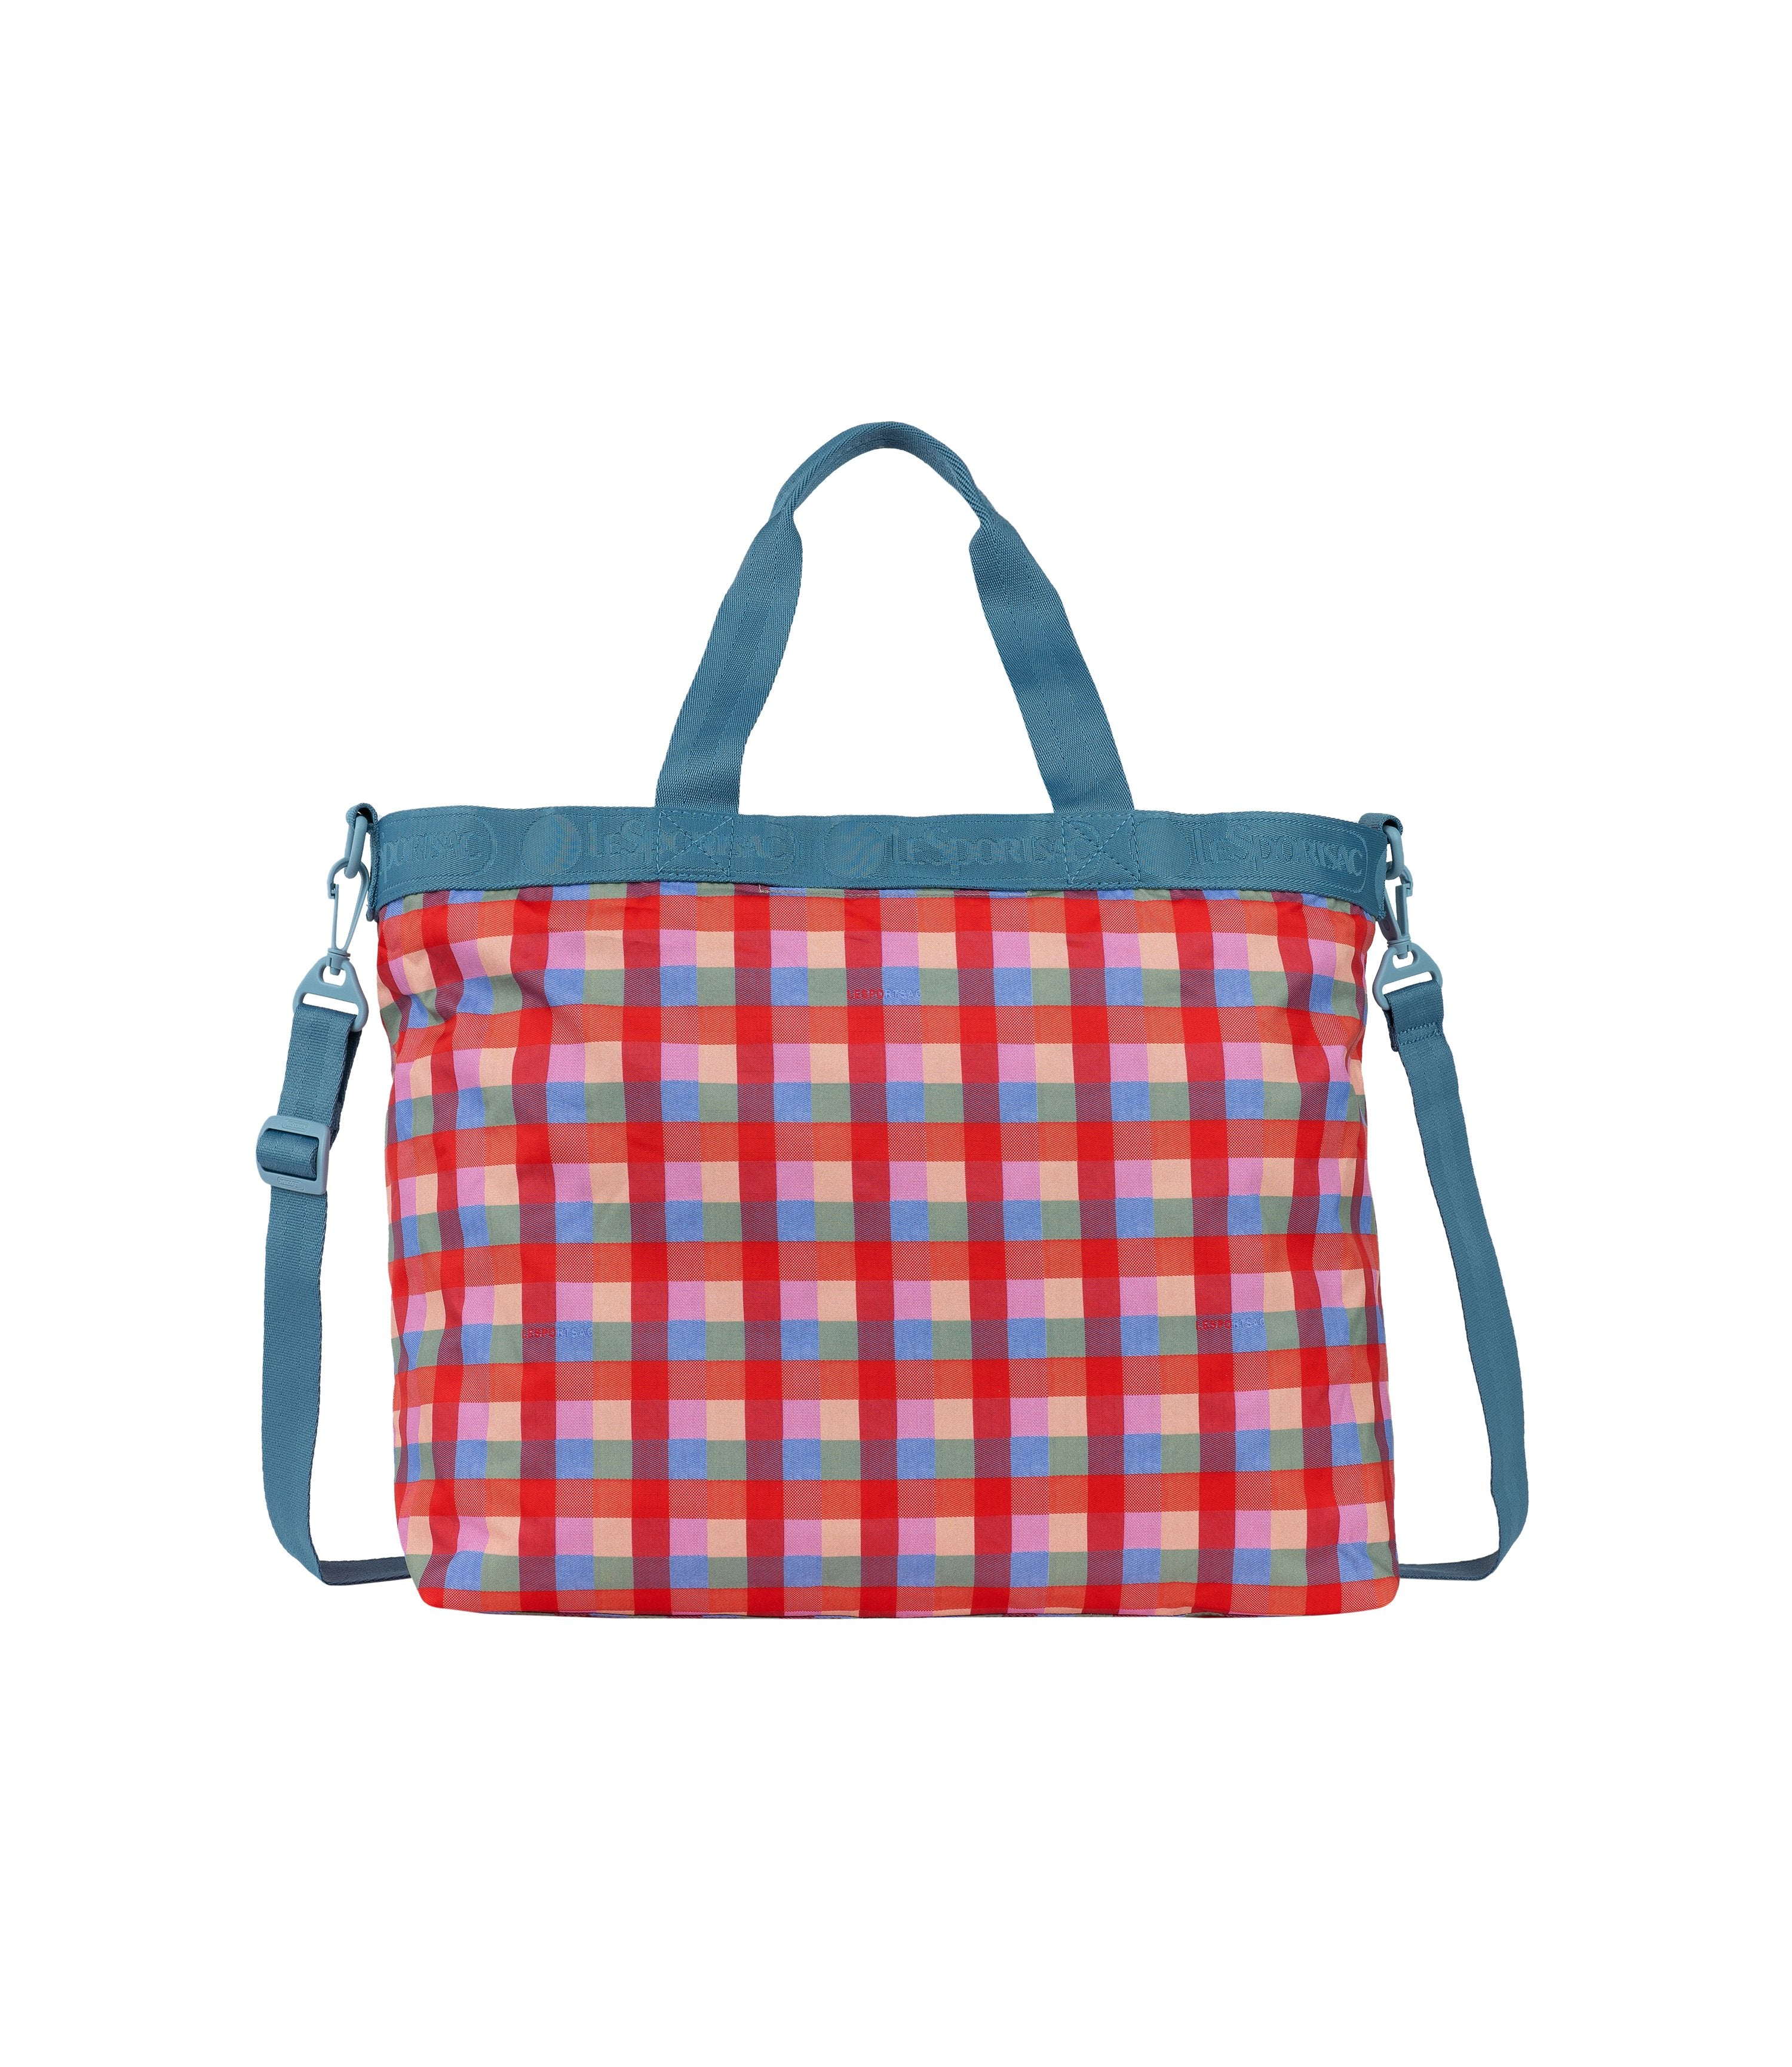 LeSportsac - Totes - Everywhere Large Tote - Meadow Check